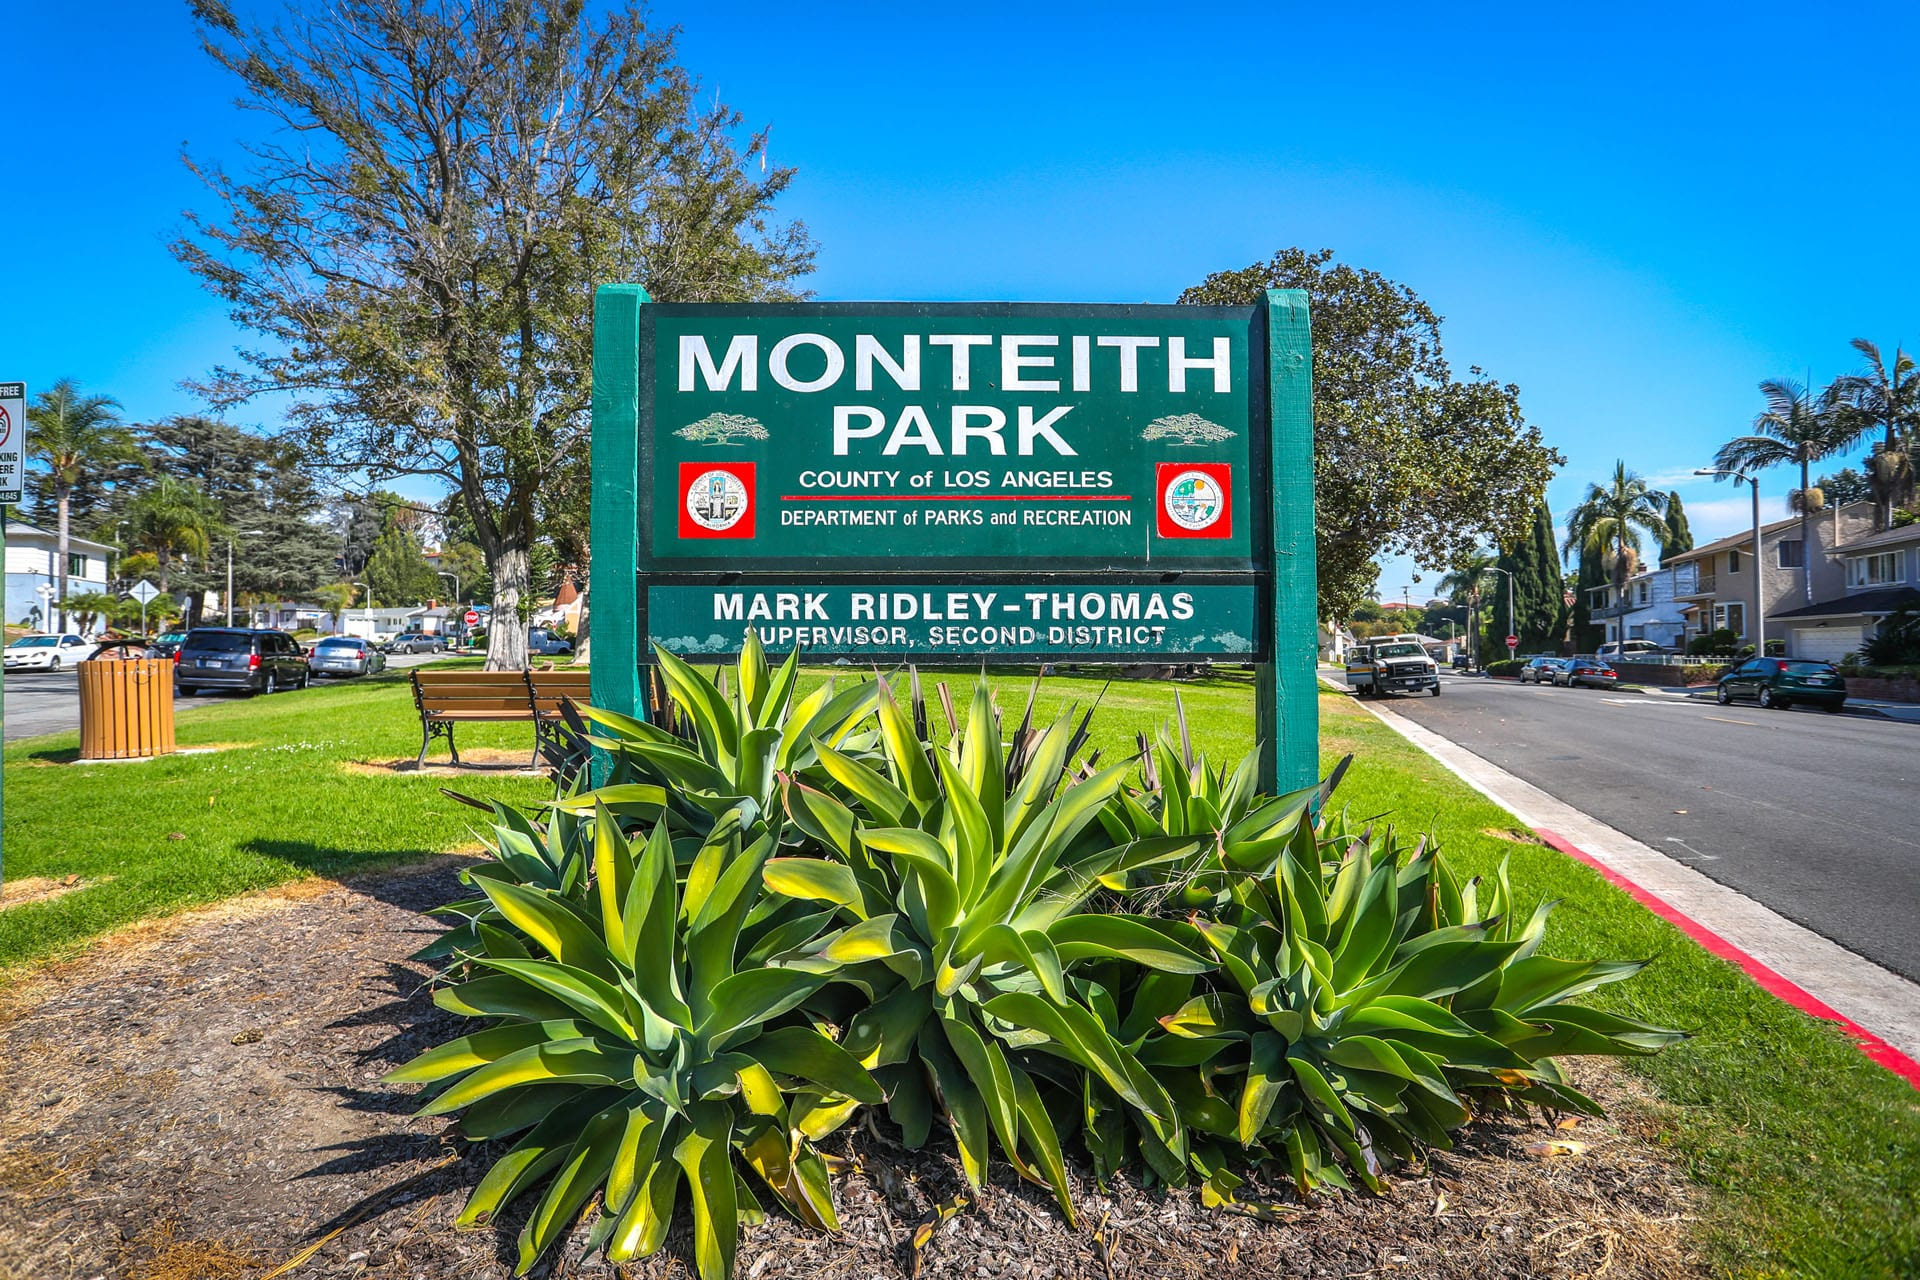 Monteith Park sign